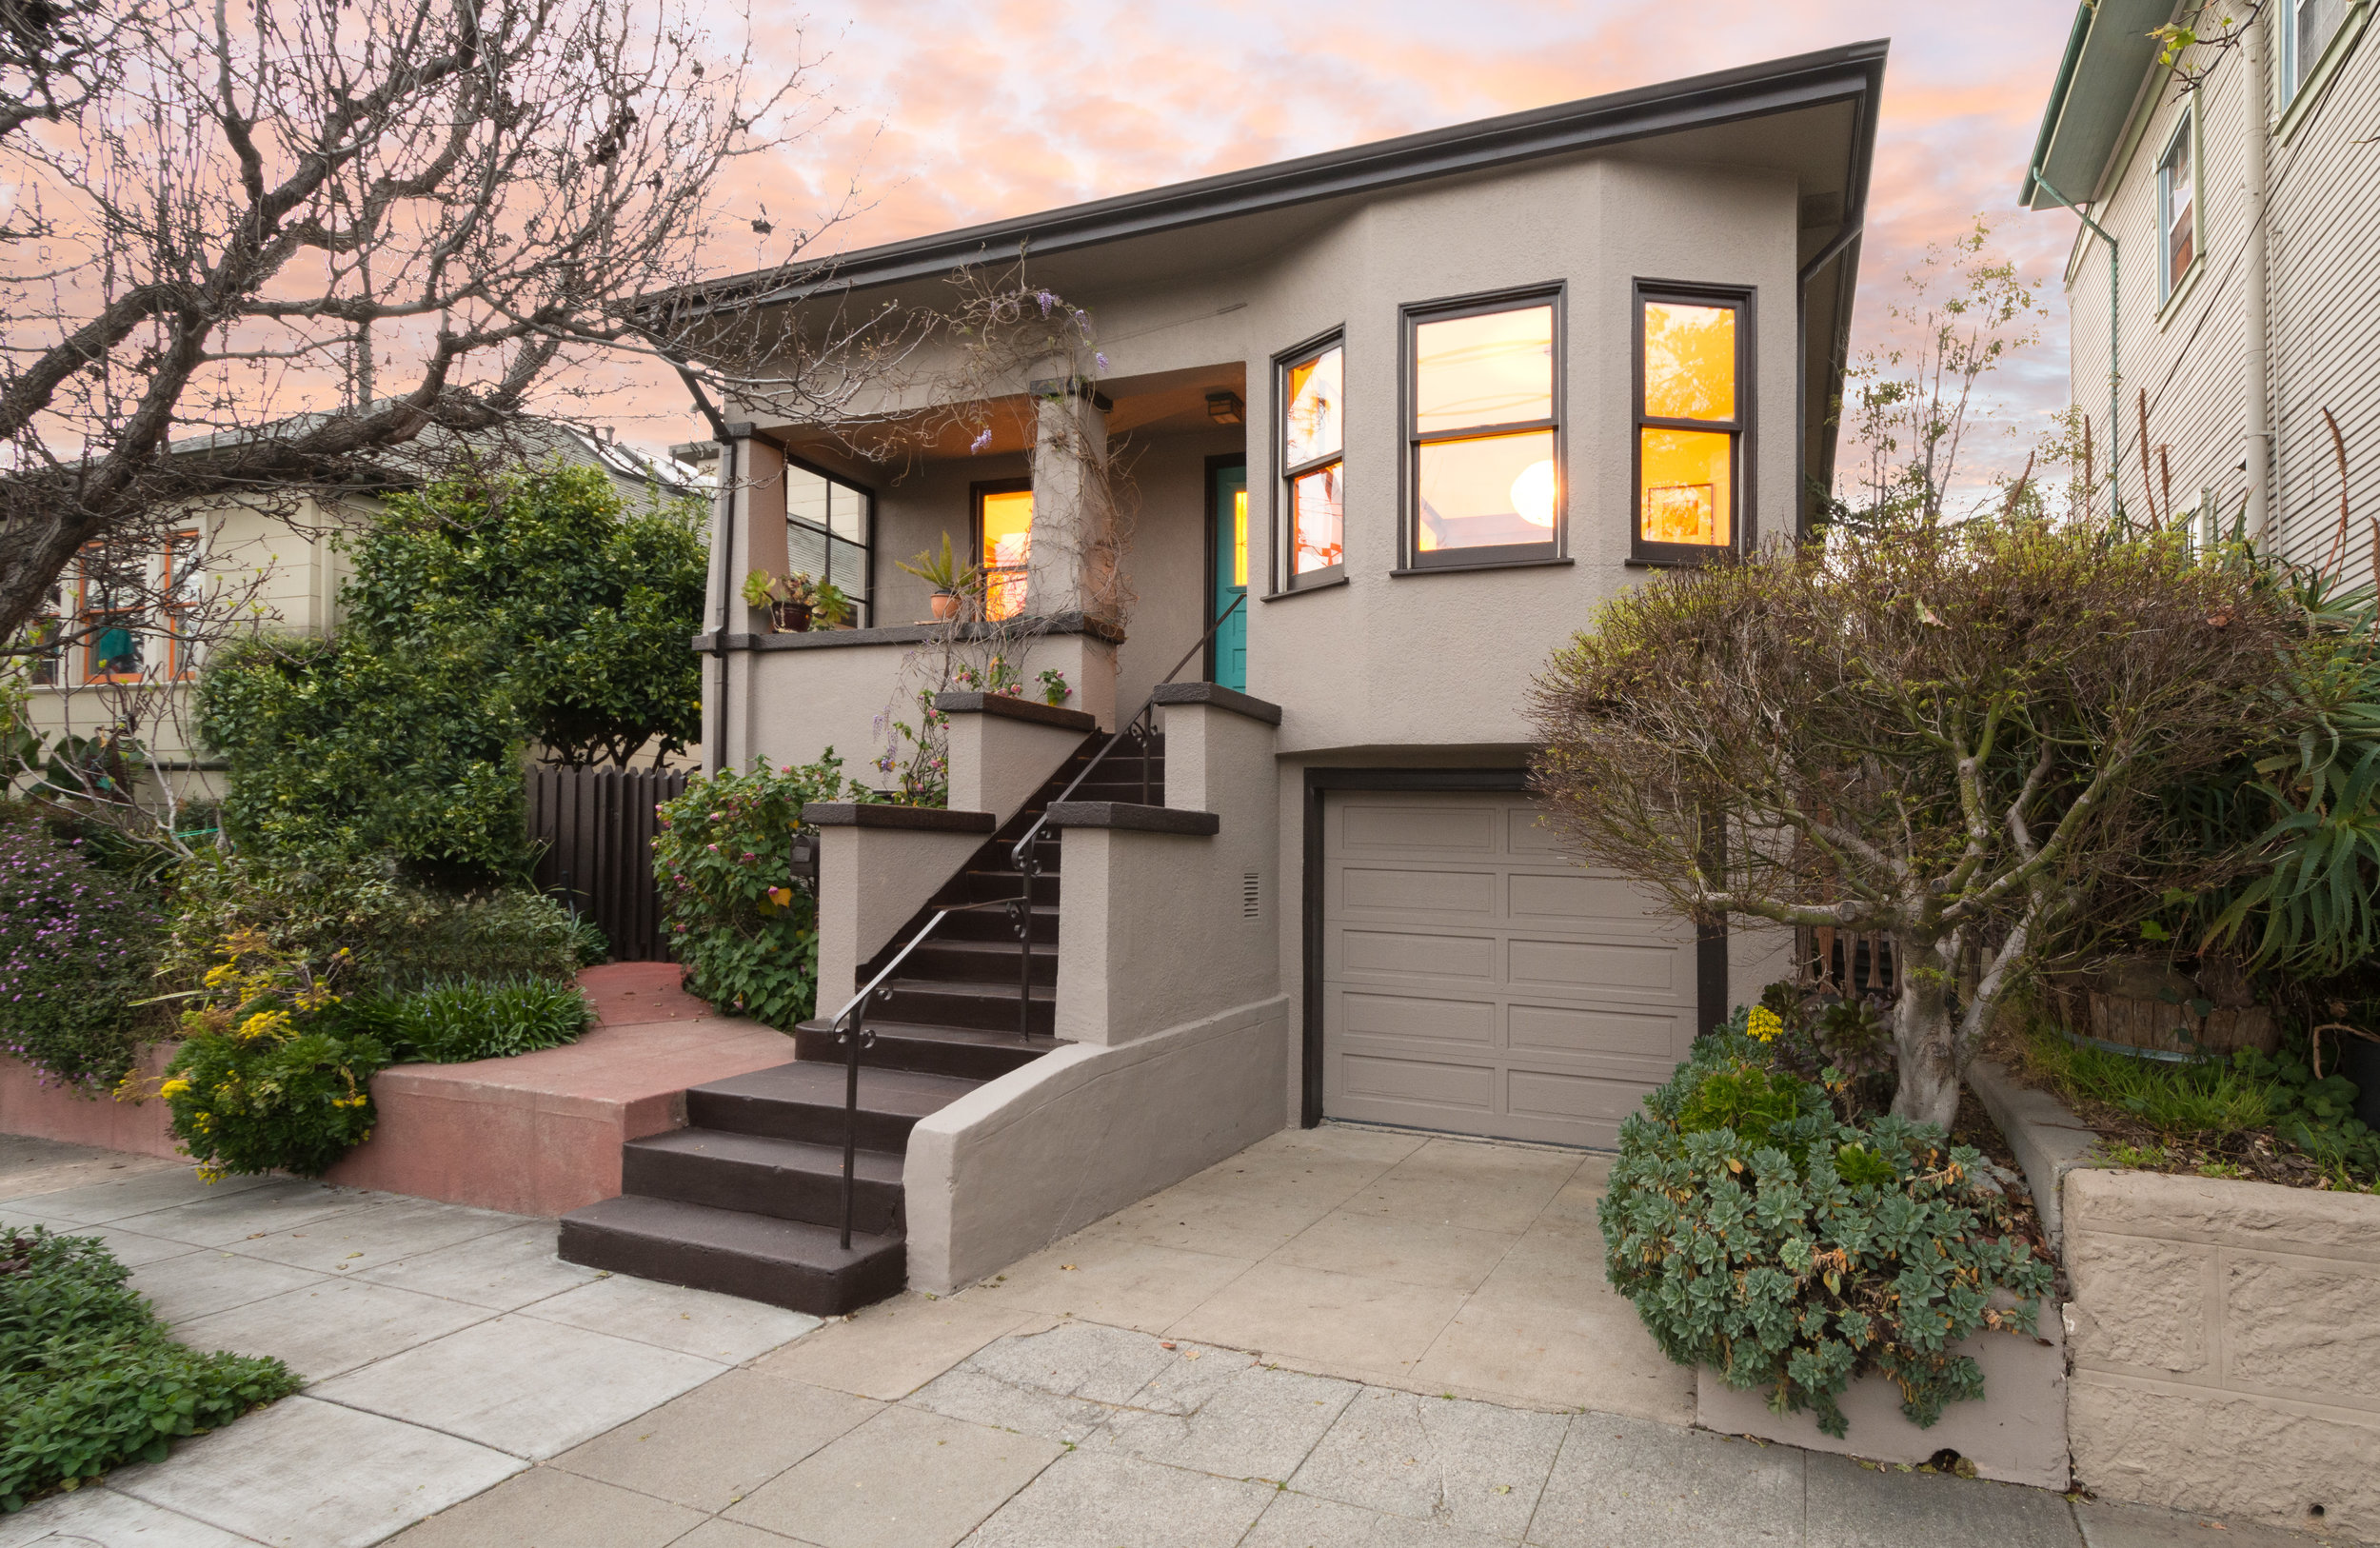 SOLD | 5229 BOYD AVENUE, OAKLAND $1,530,000